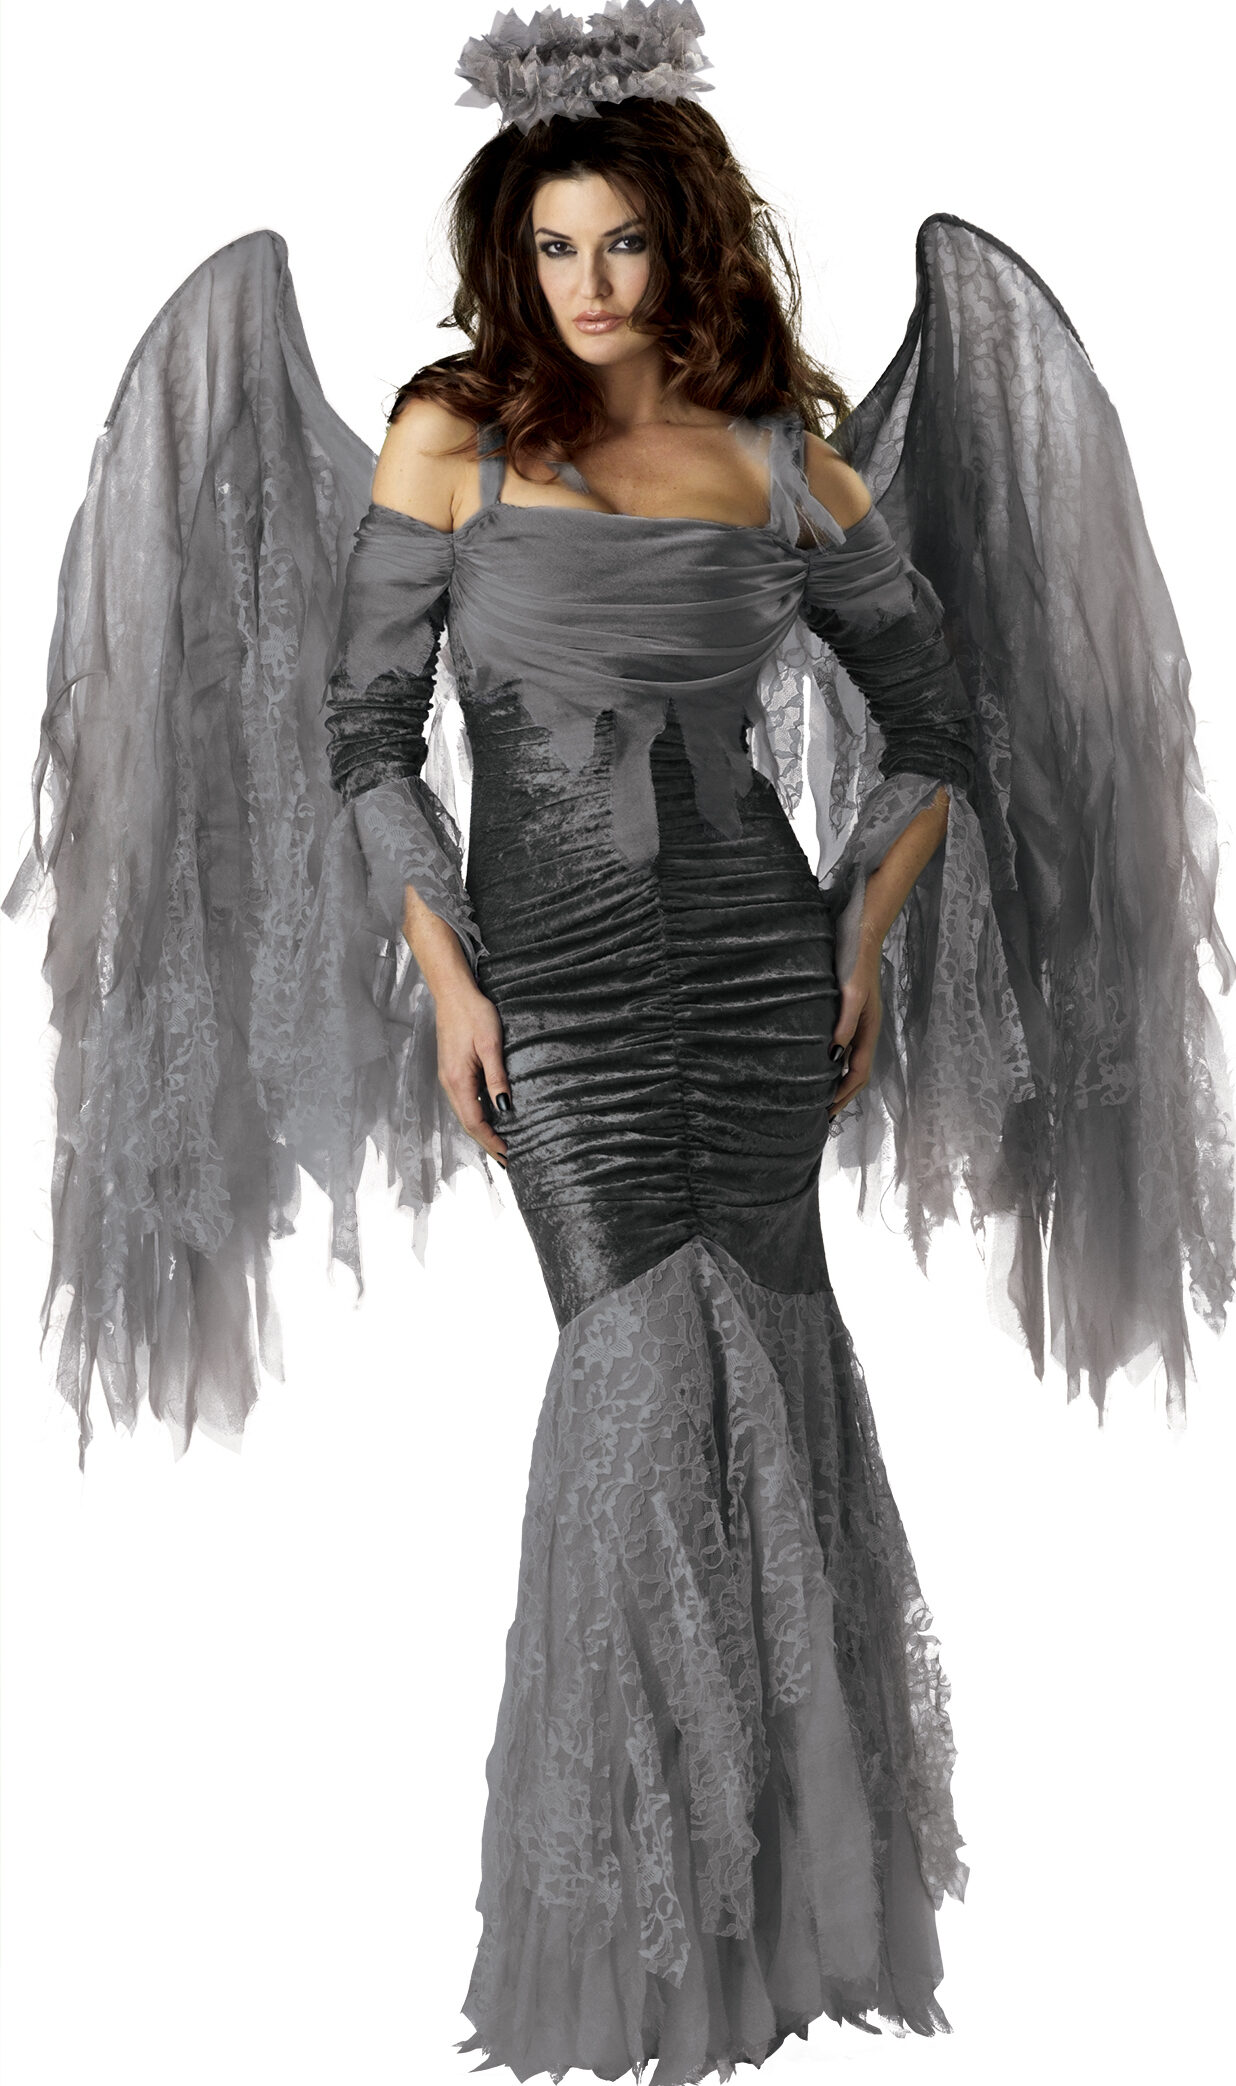 gothic fallen angel adult costume mr costumes. Black Bedroom Furniture Sets. Home Design Ideas